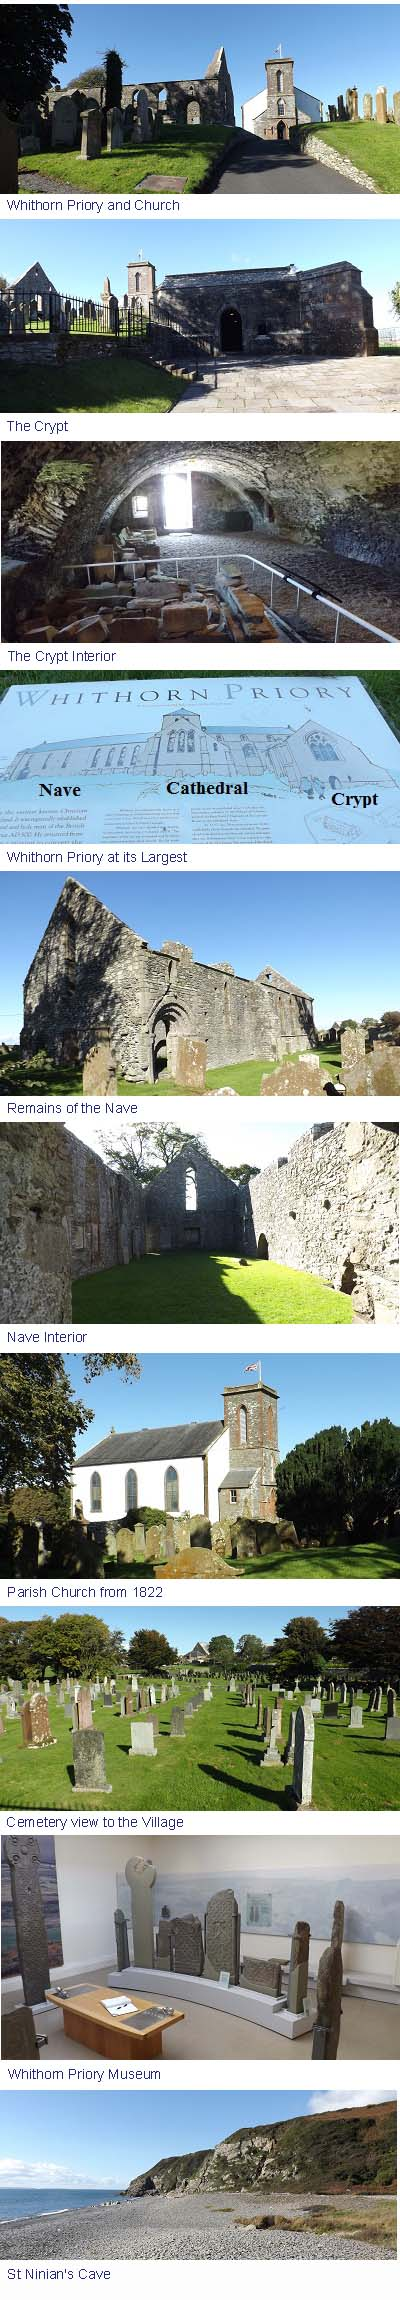 Whithorn Priory Images